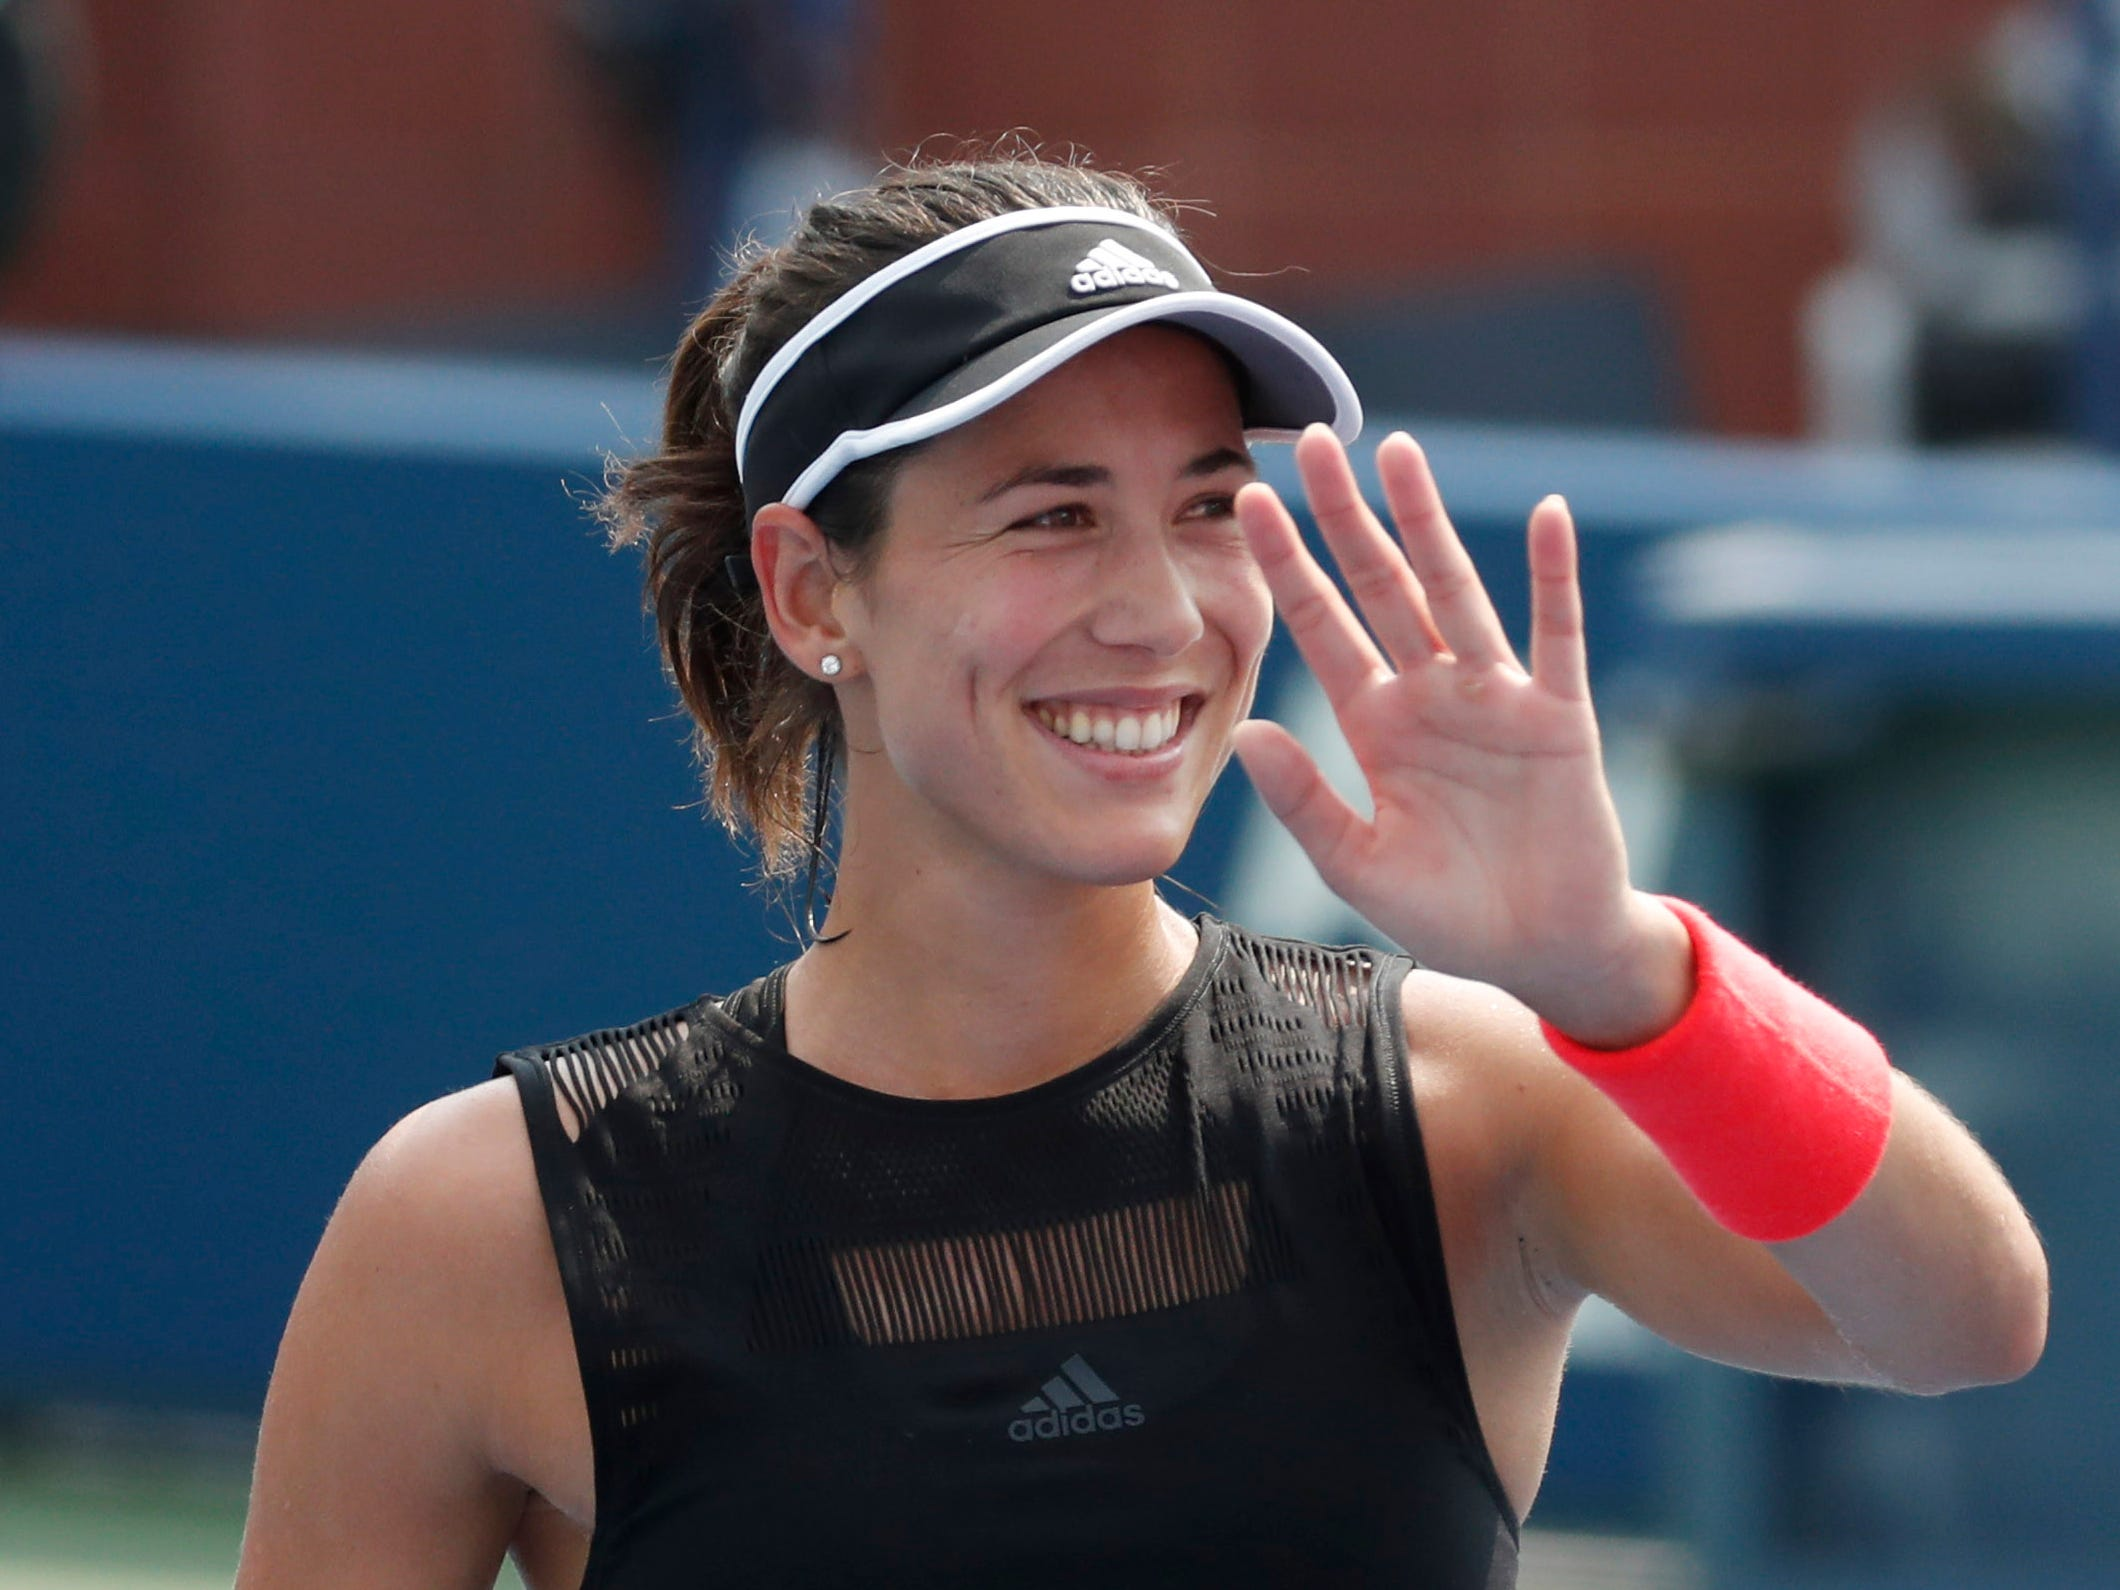 Garbine Muguruza of Spain had no trouble in her opening match,6-3, 6-0 vs.  Shuai Zhang of China.